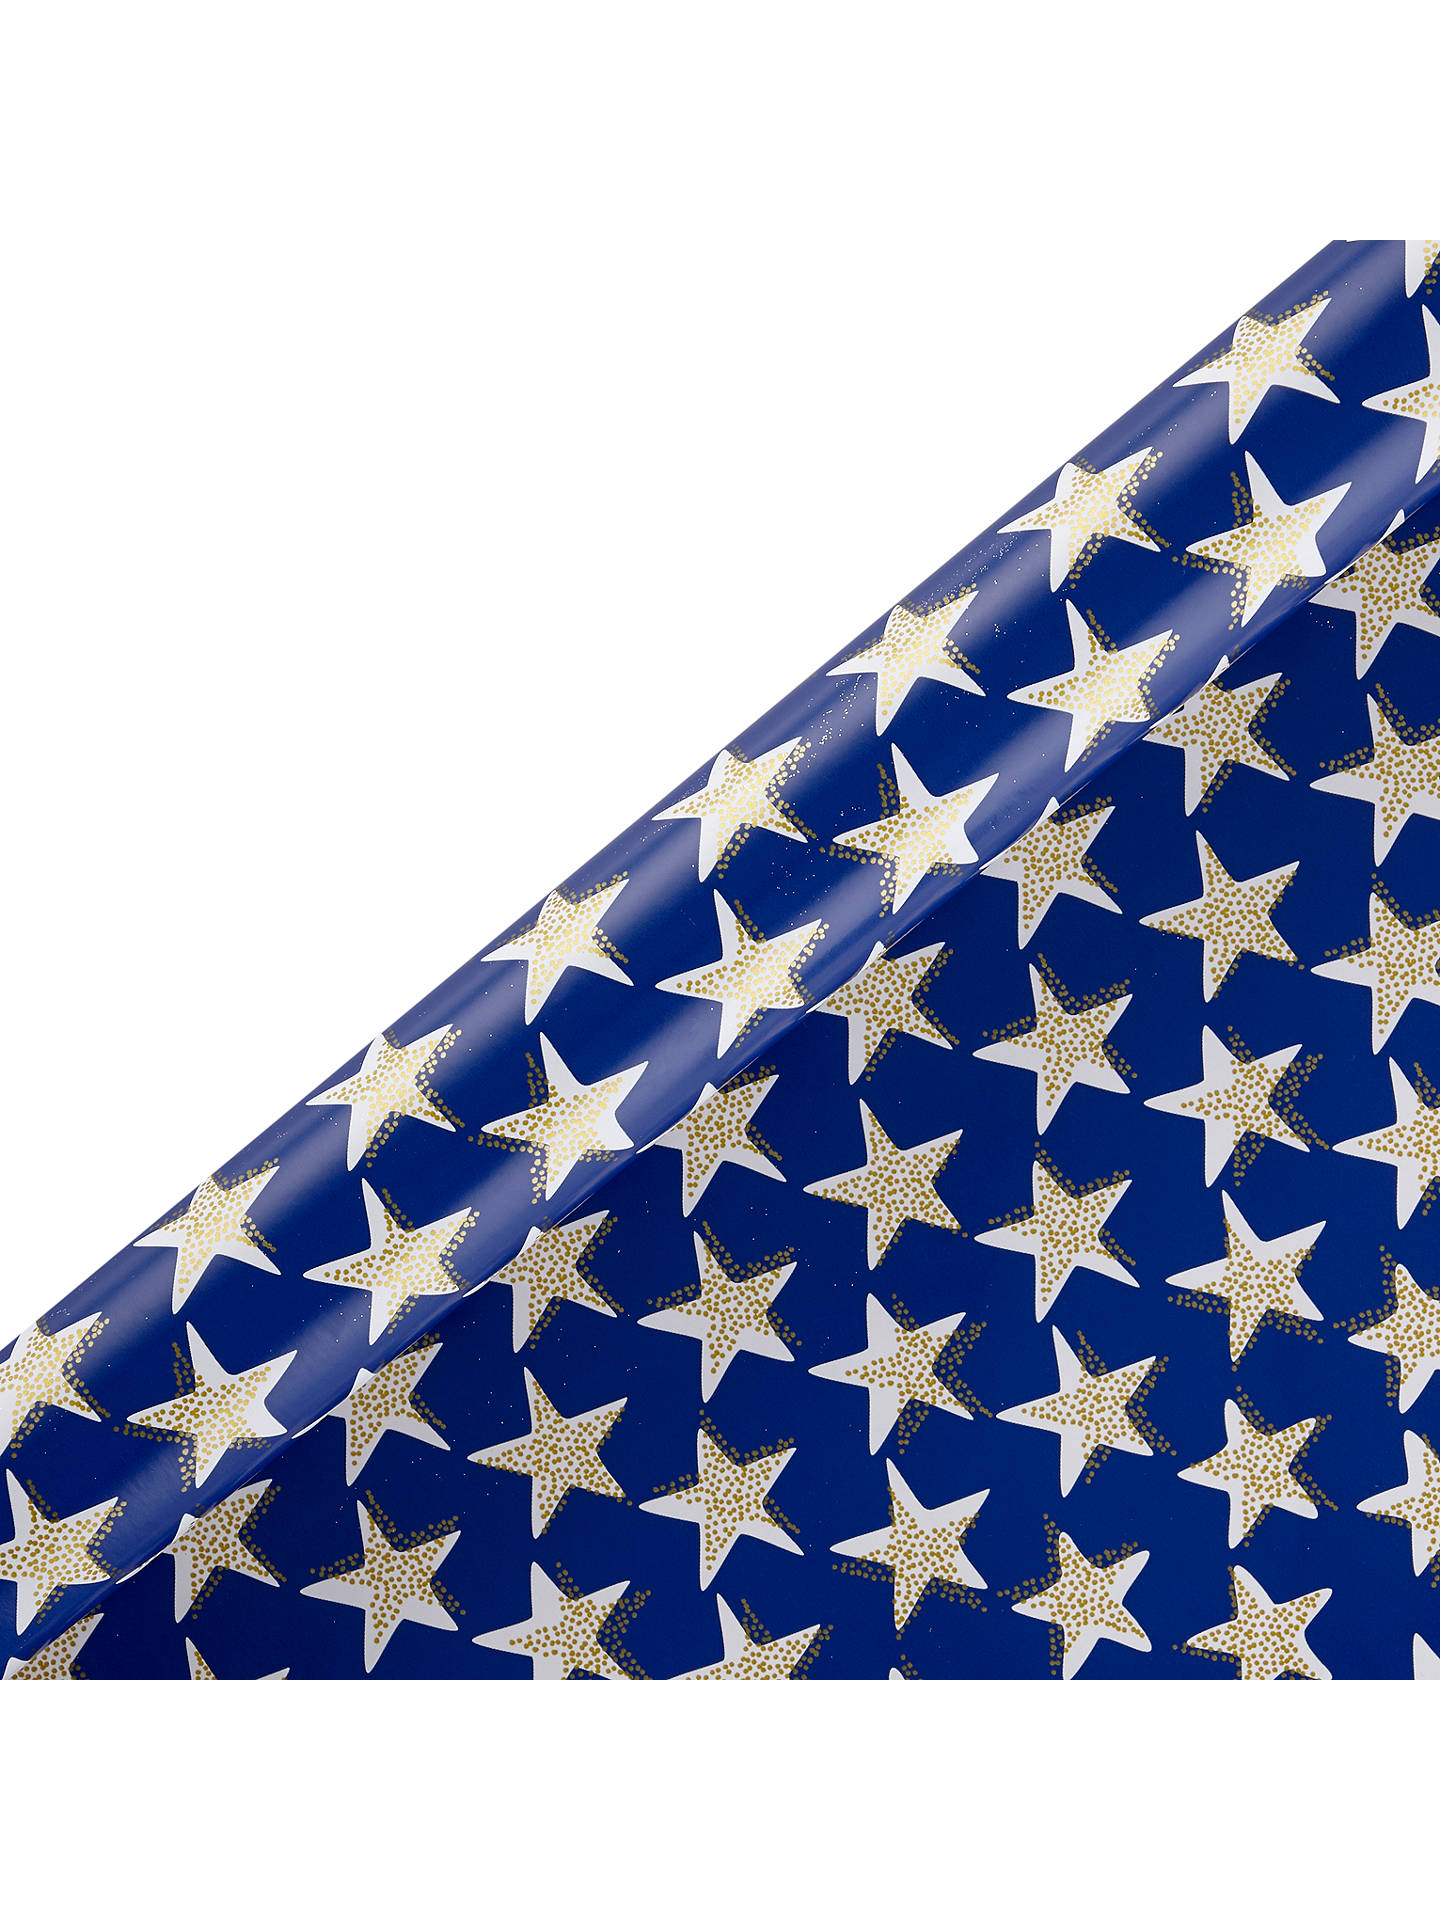 Buy John Lewis & Partners Sapphire Star Fish Gift Wrap, 3m Online at johnlewis.com